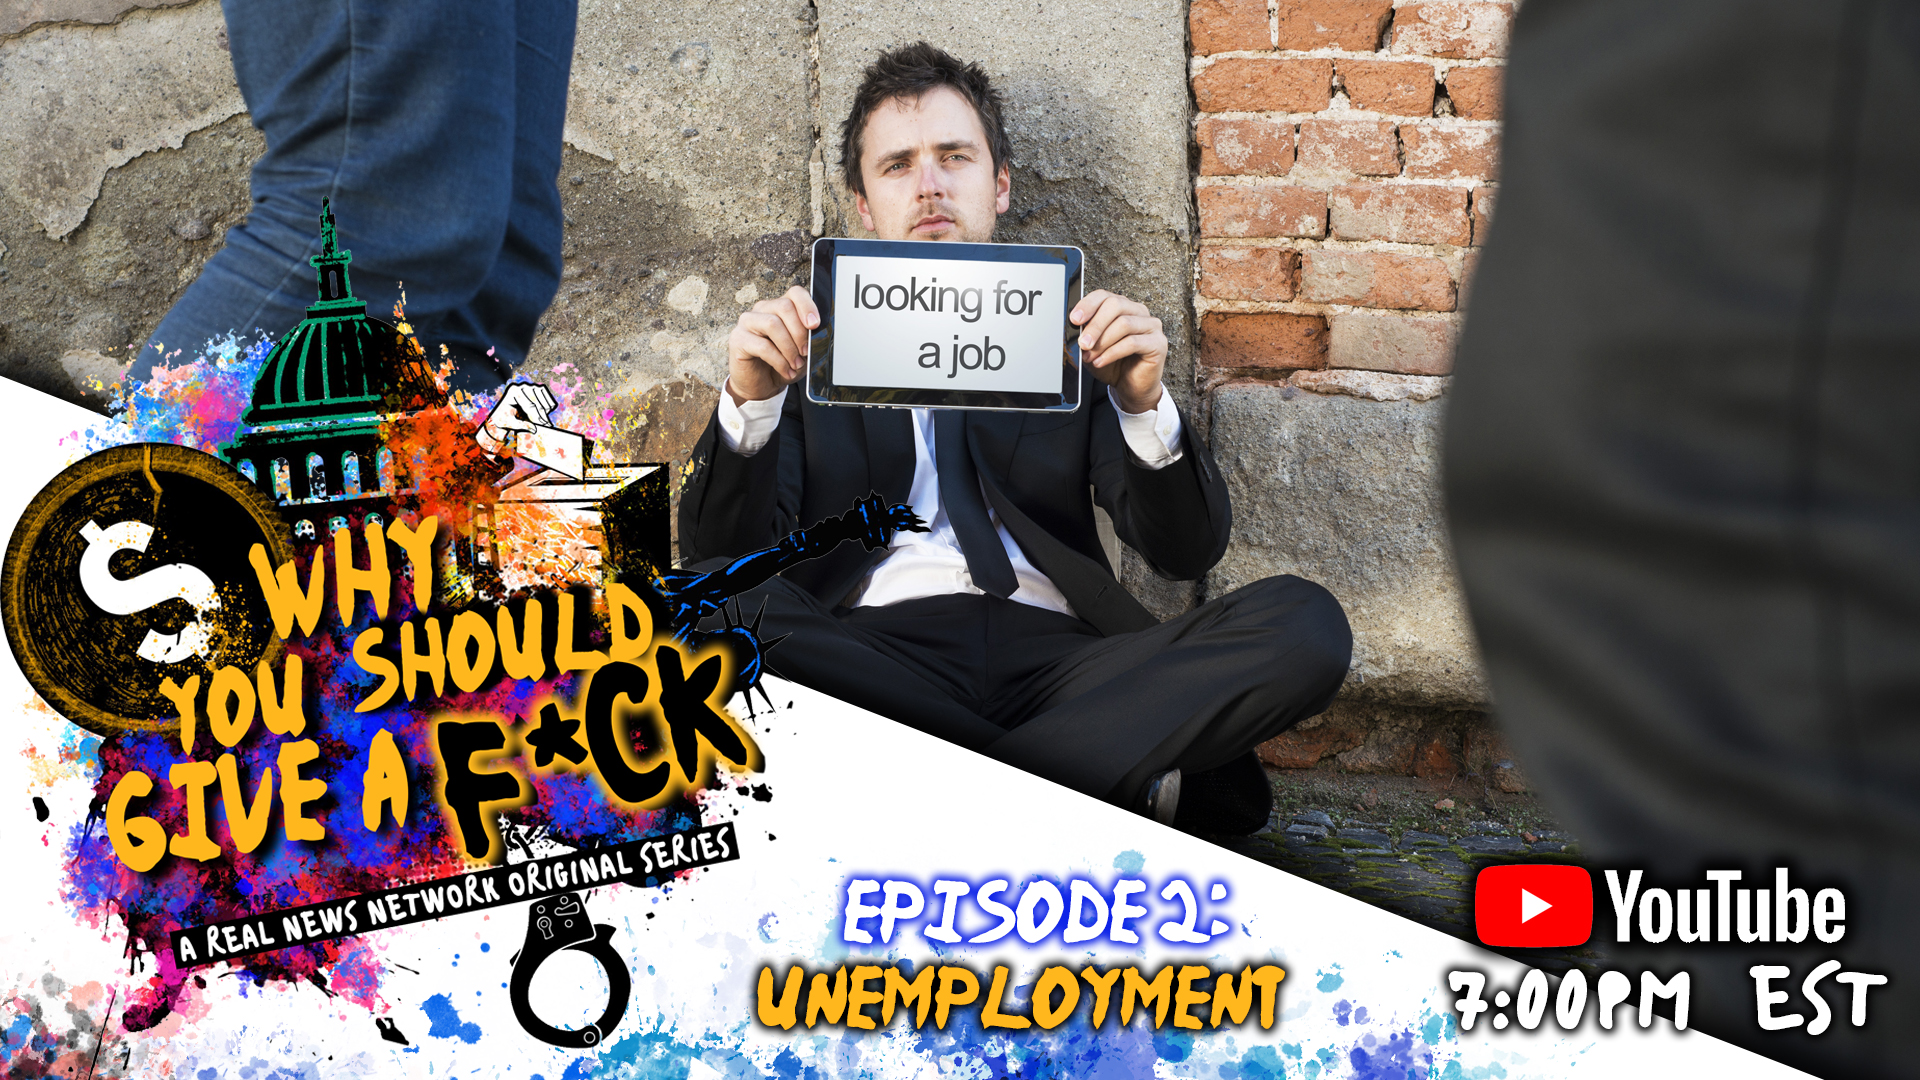 Why You Should Give a F*ck | Ep. 2 | Unemployment